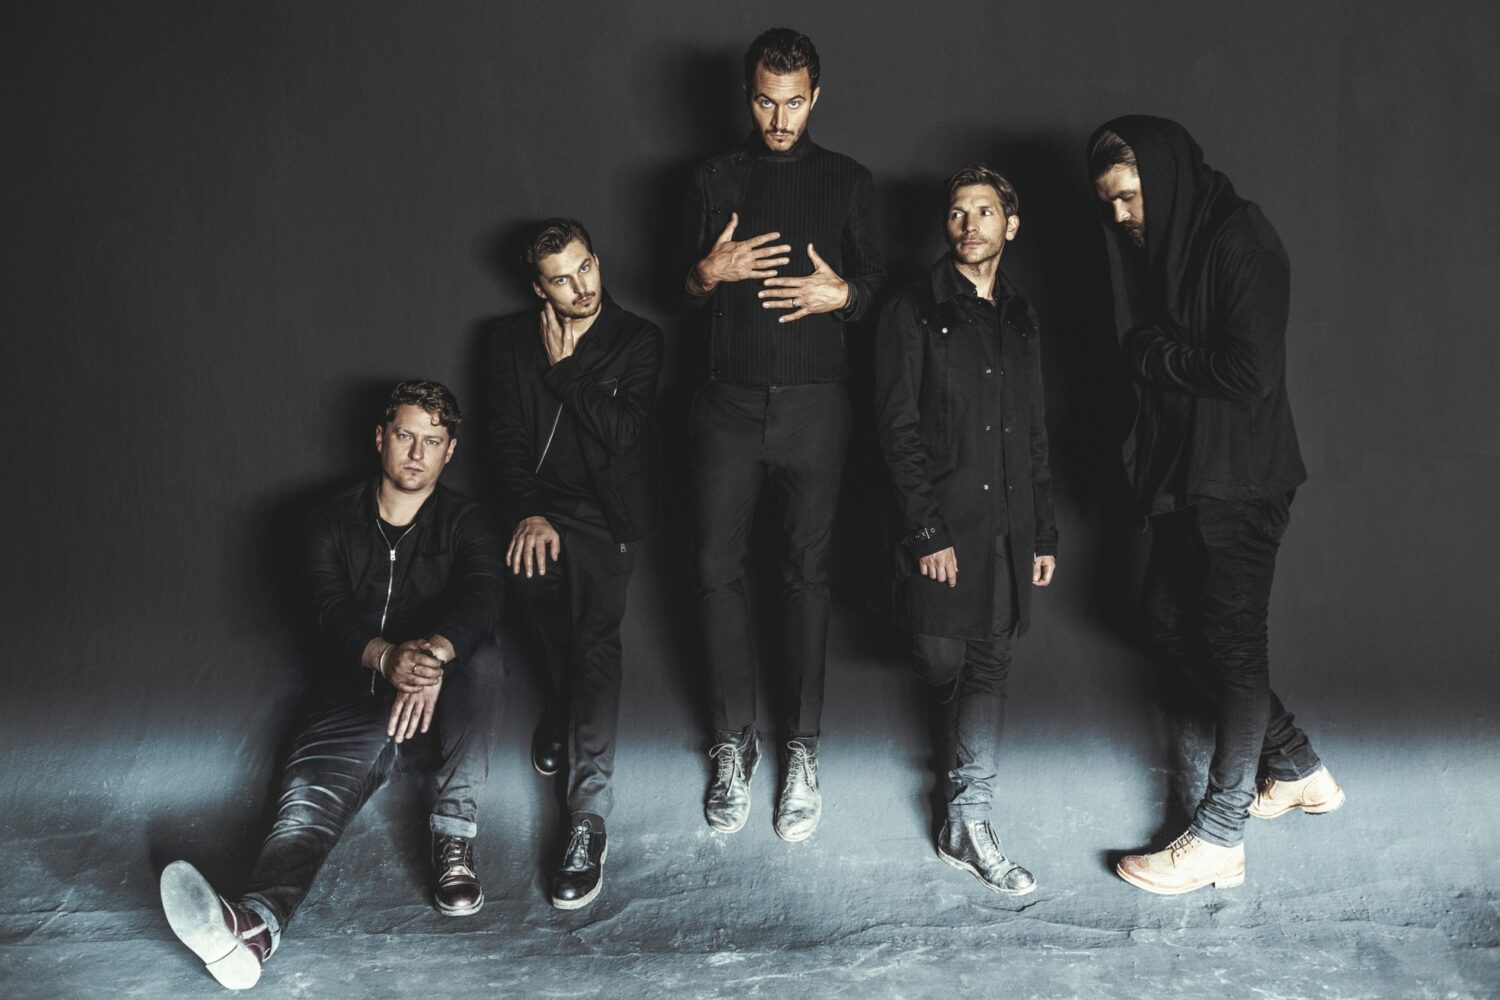 """Editors unveil new single 'Frankenstein', a """"cartoon song for the freaks"""""""